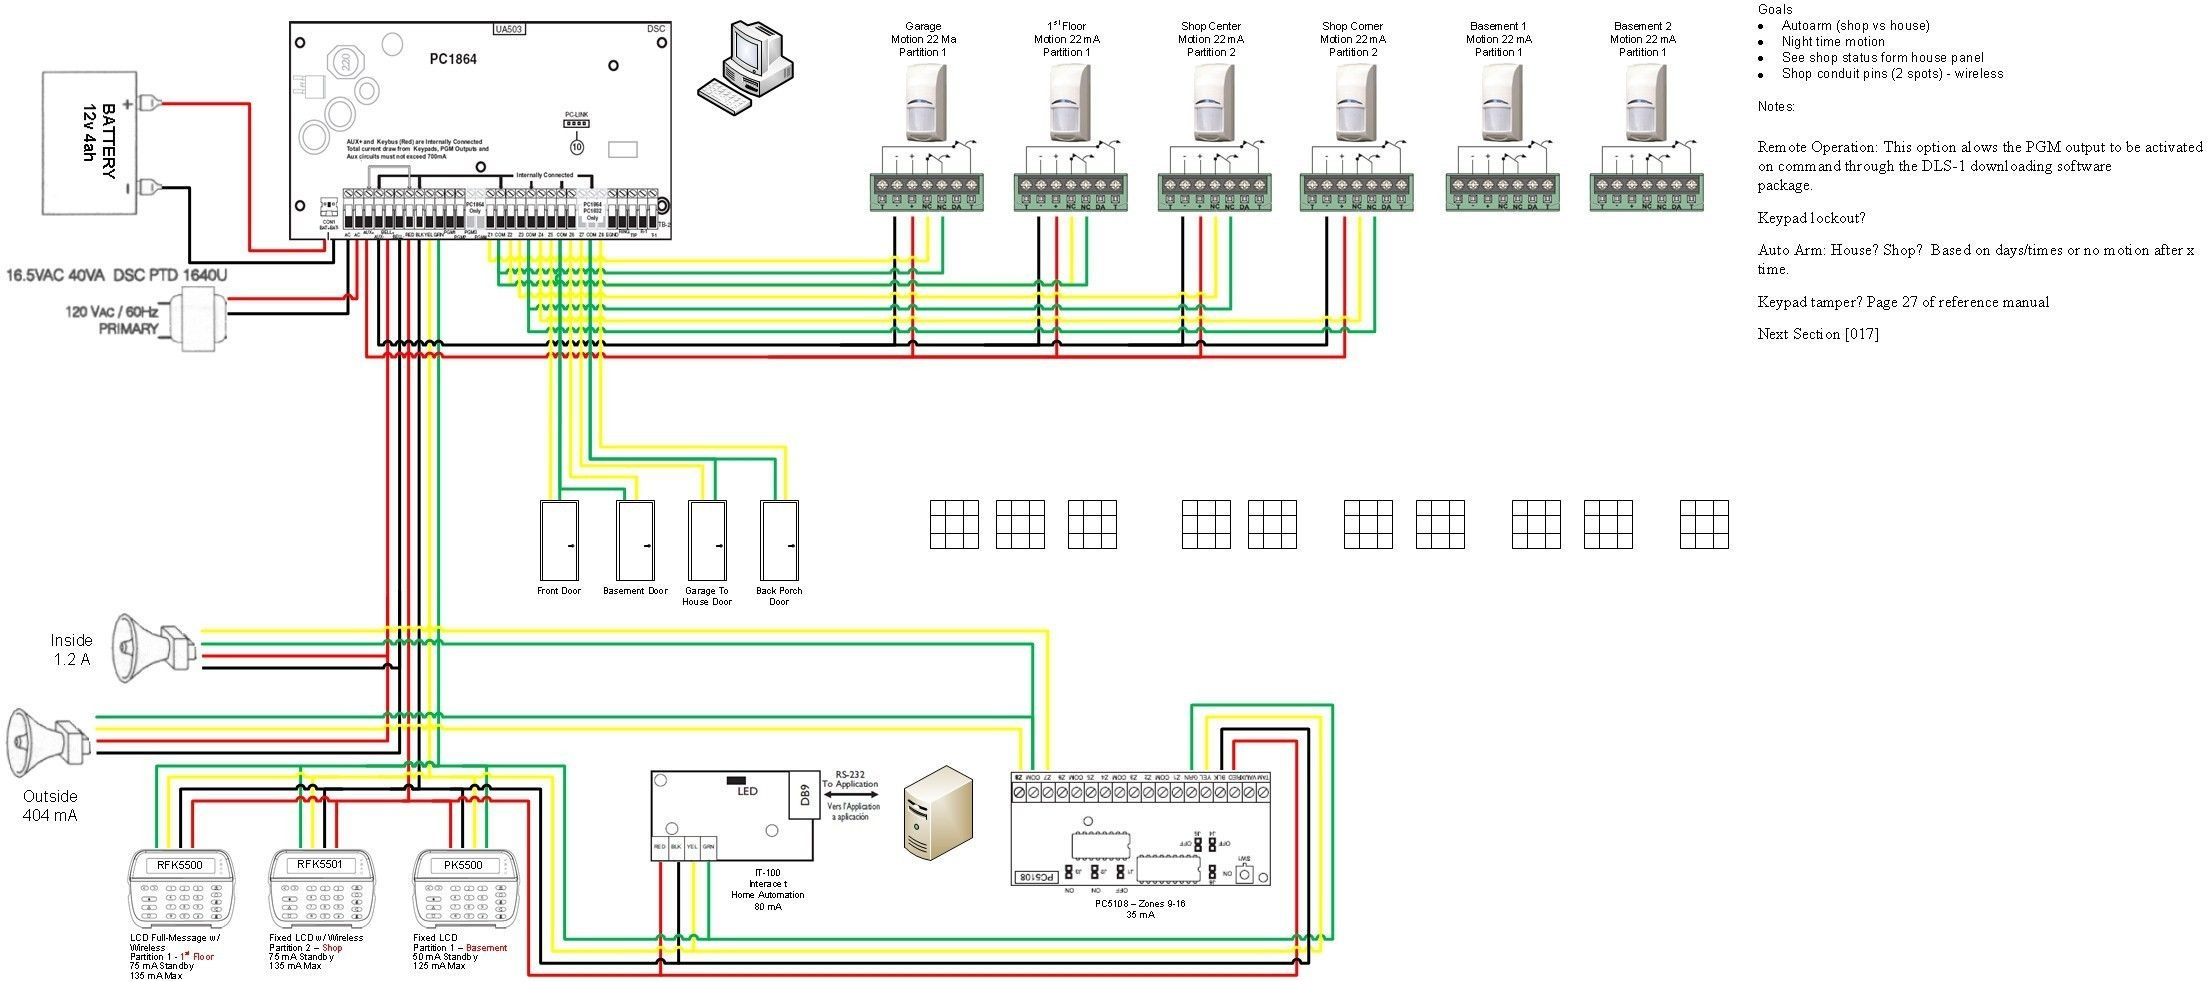 New Wiring Diagram For Burglar Alarm System  Con Im U00e1genes